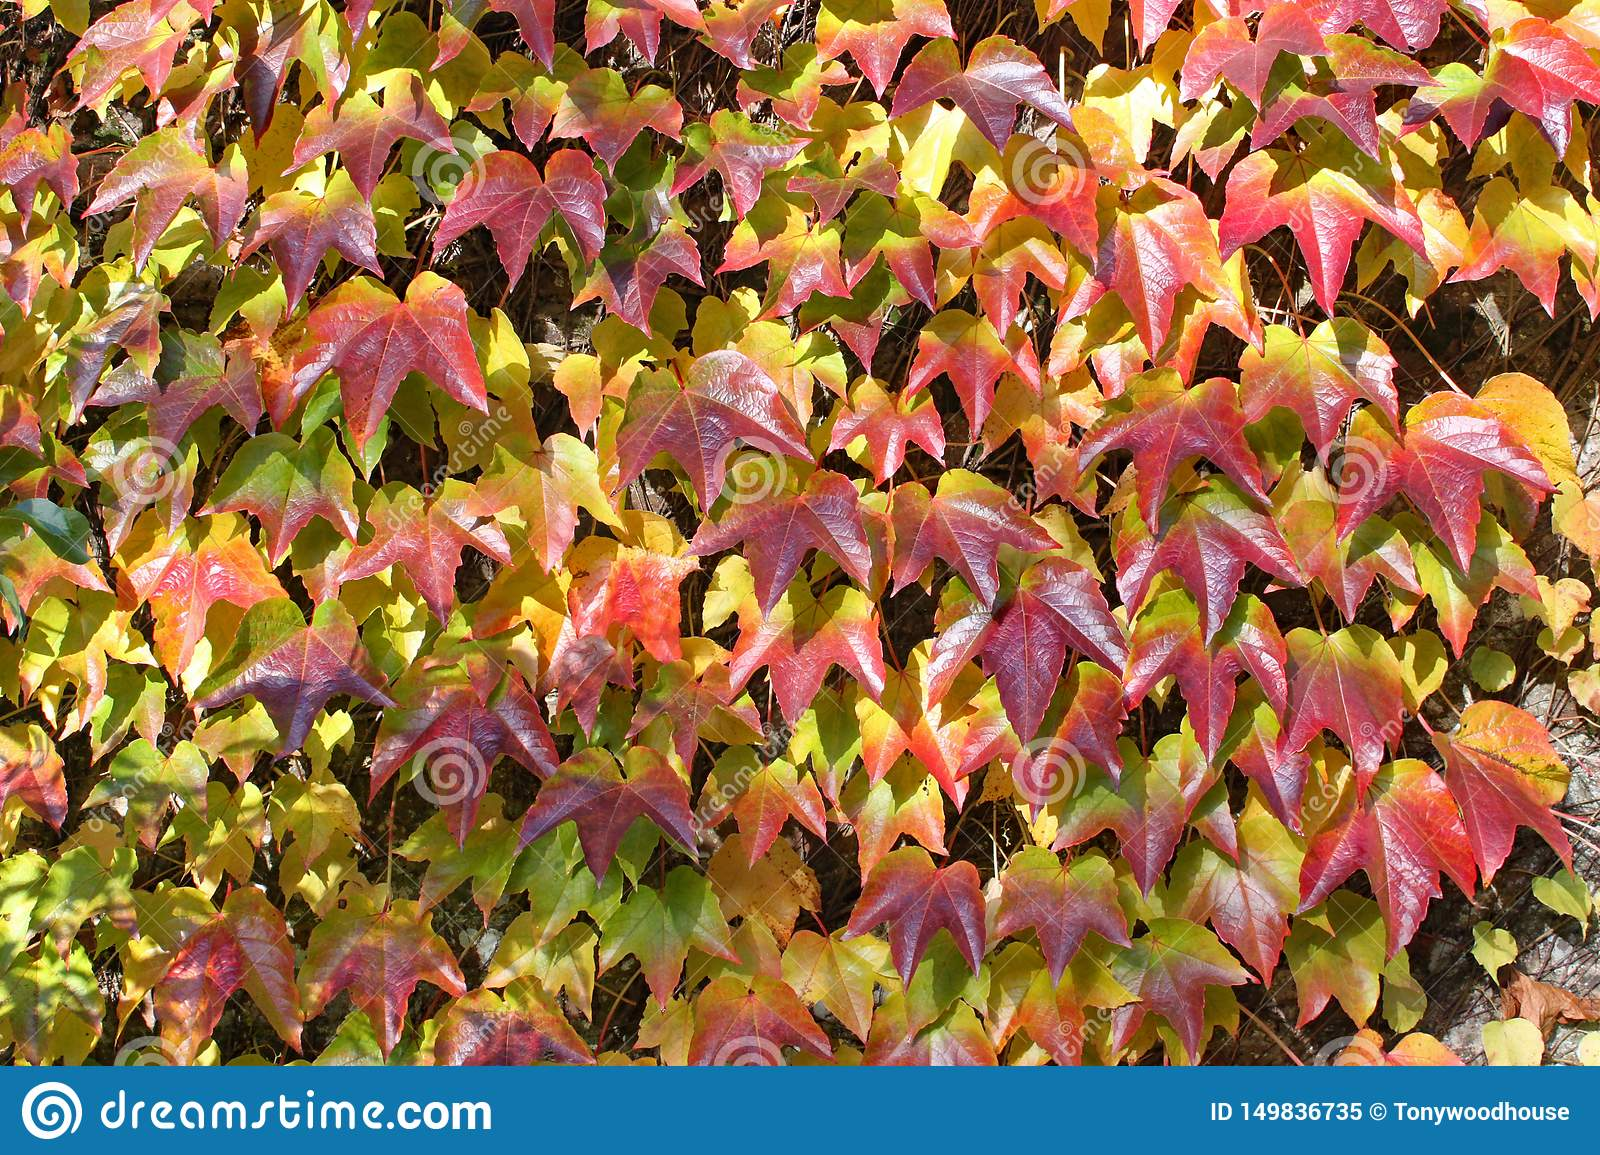 He autumnal colours of ivy groing up a wall at Arley Arboretum in the Midlands in England